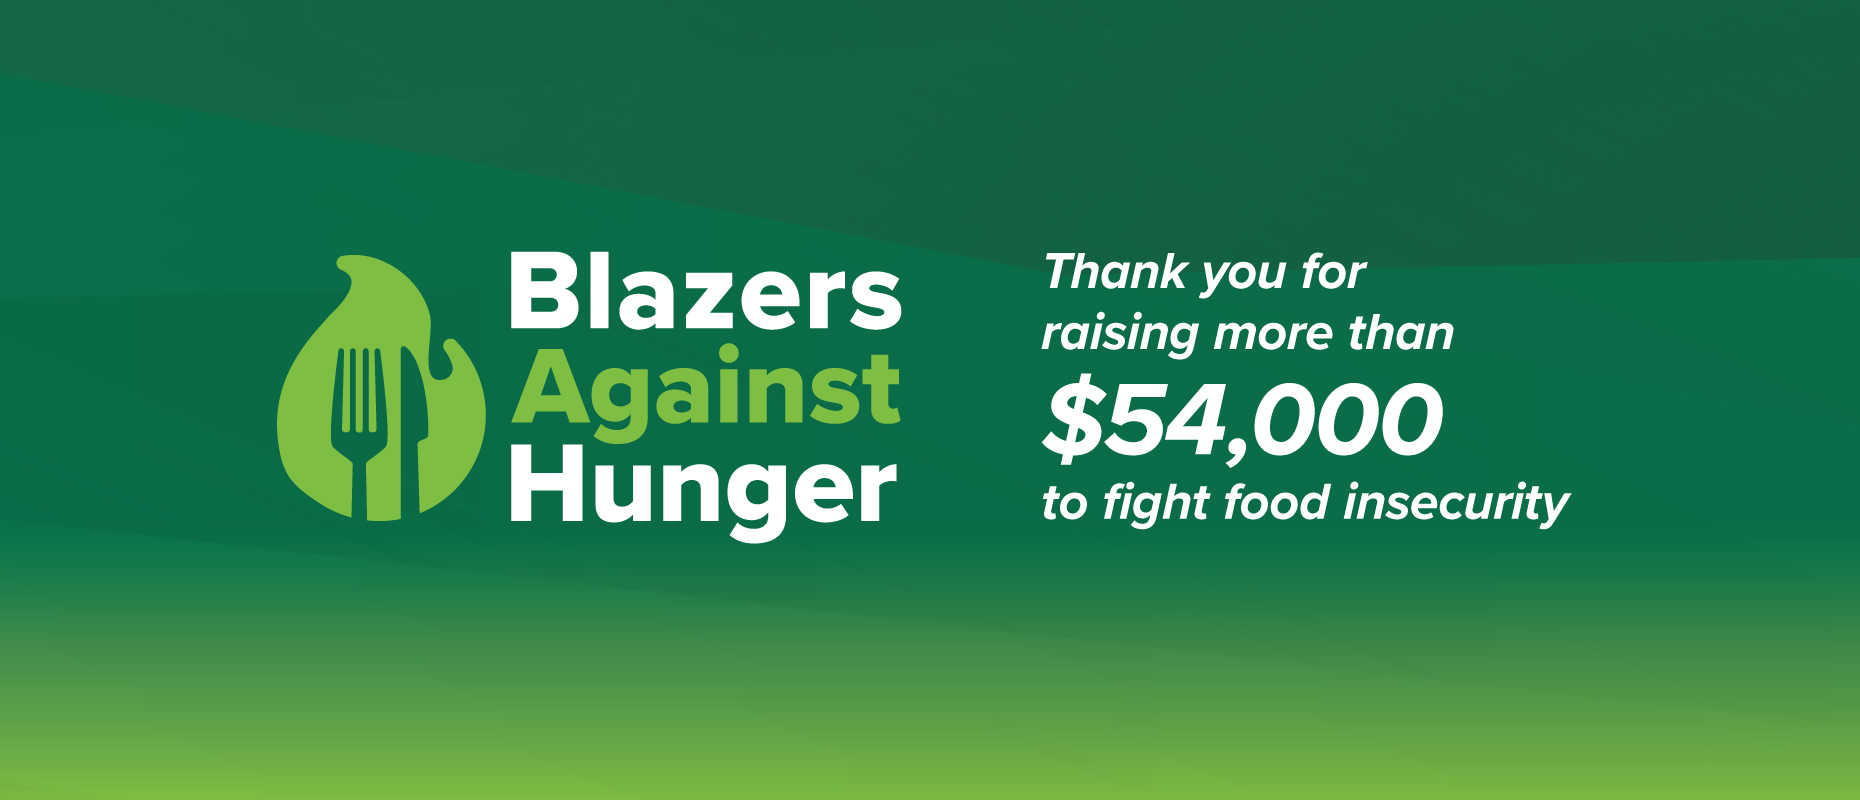 Blazers Against Hunger: Thank You